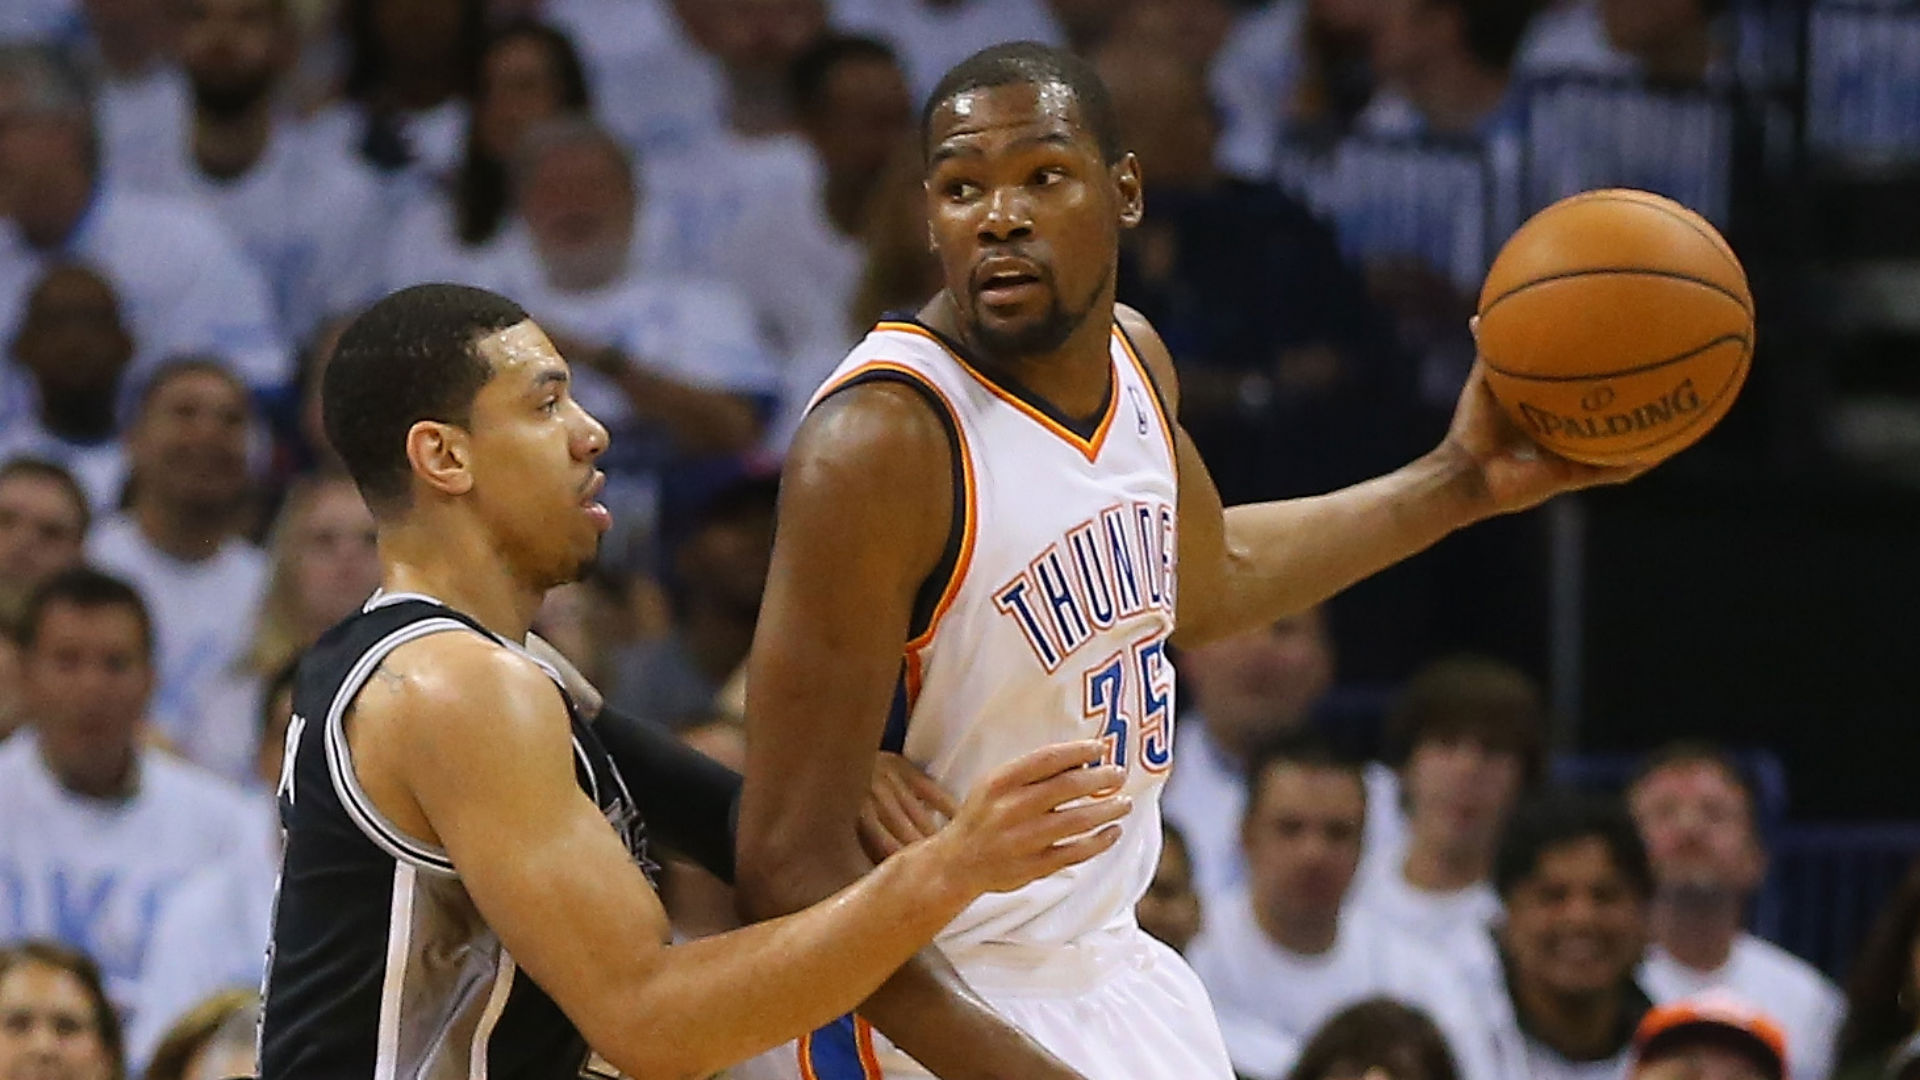 kevin-durant-090214-getty-ftr.jpg